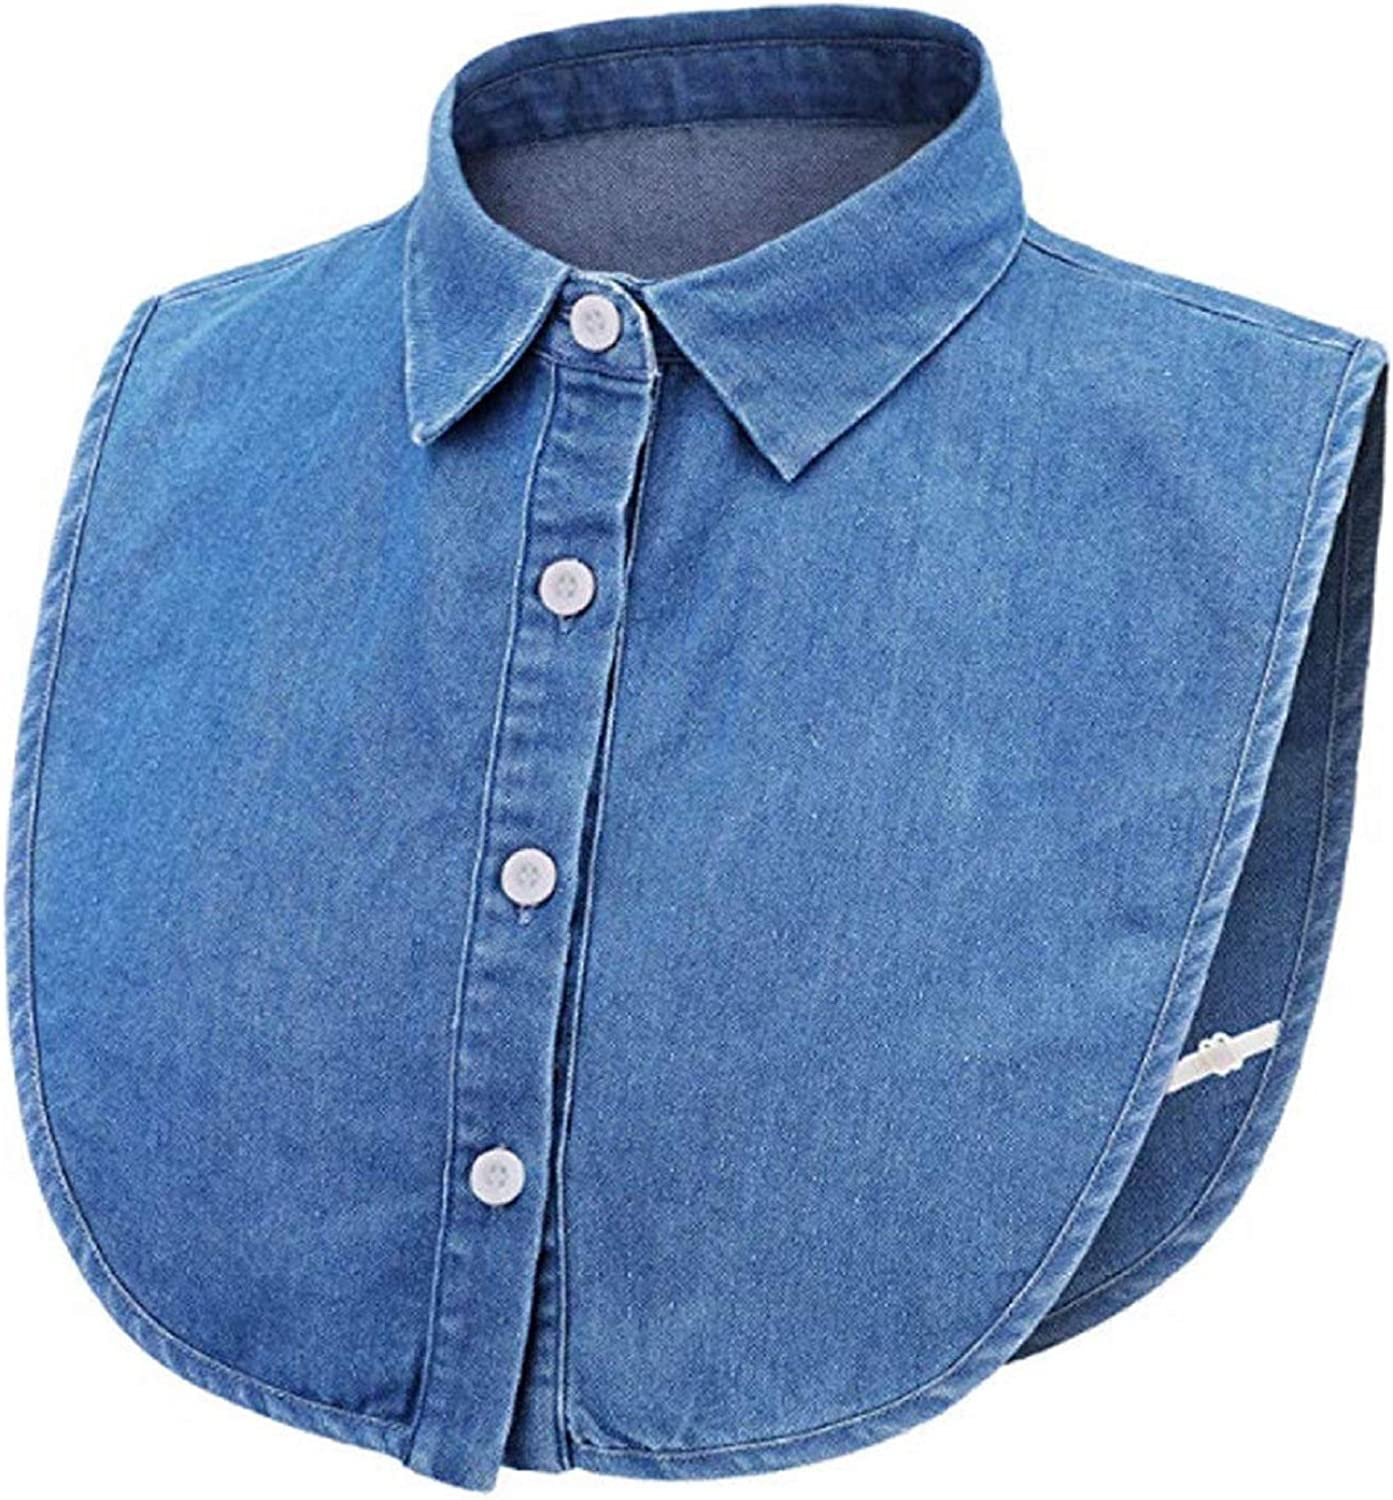 Classic Fake Collar Detachable Blouse Dickey Shirts Half Wome Genuine Free Shipping for